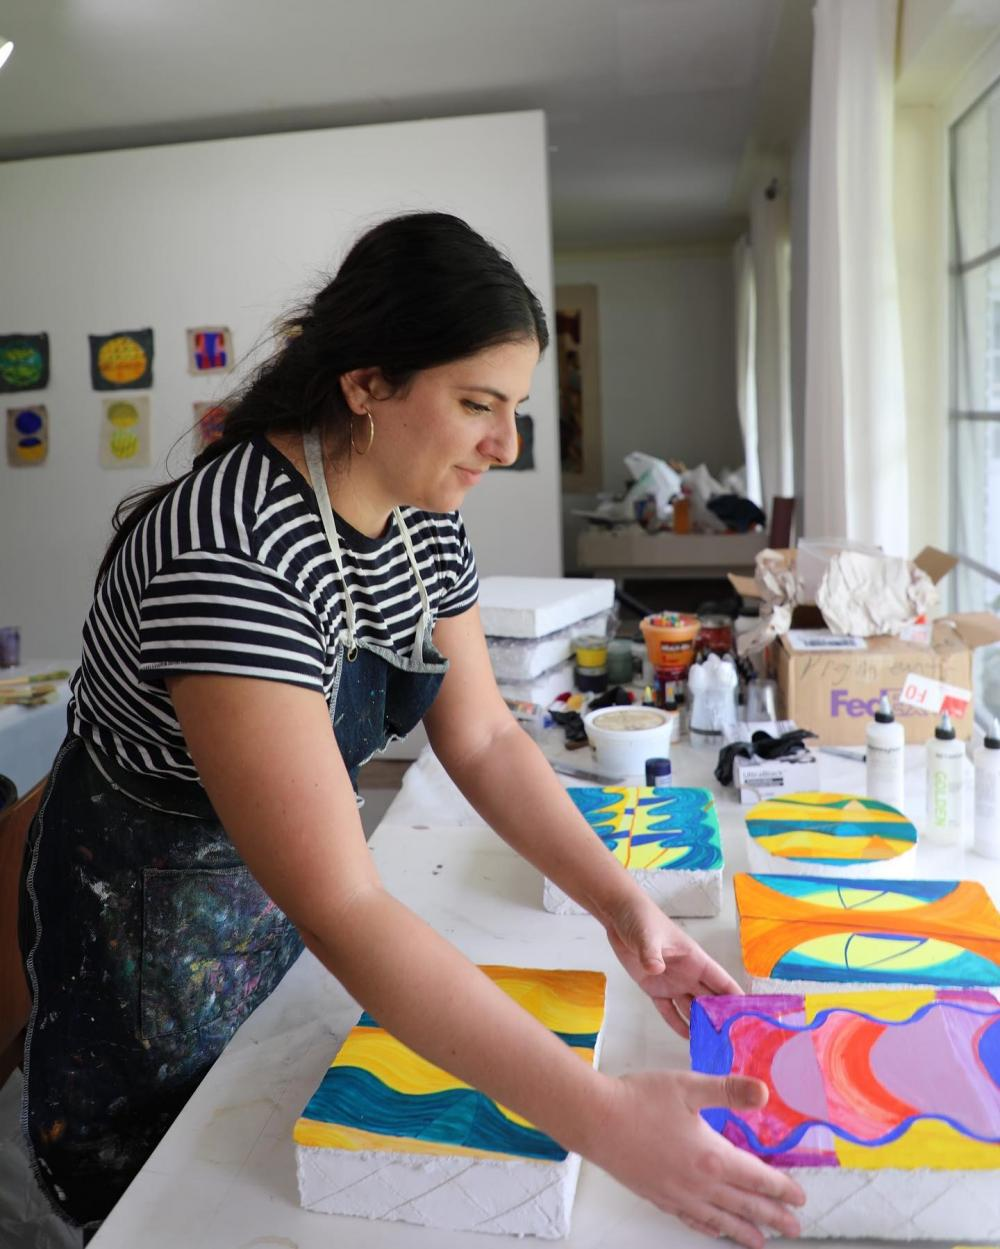 Print Studio Art Professor at The University of Texas at Austin Beverly Acha in Miami at the Fountainhead residency arranging her painting and print work in front of a window facing toward the right